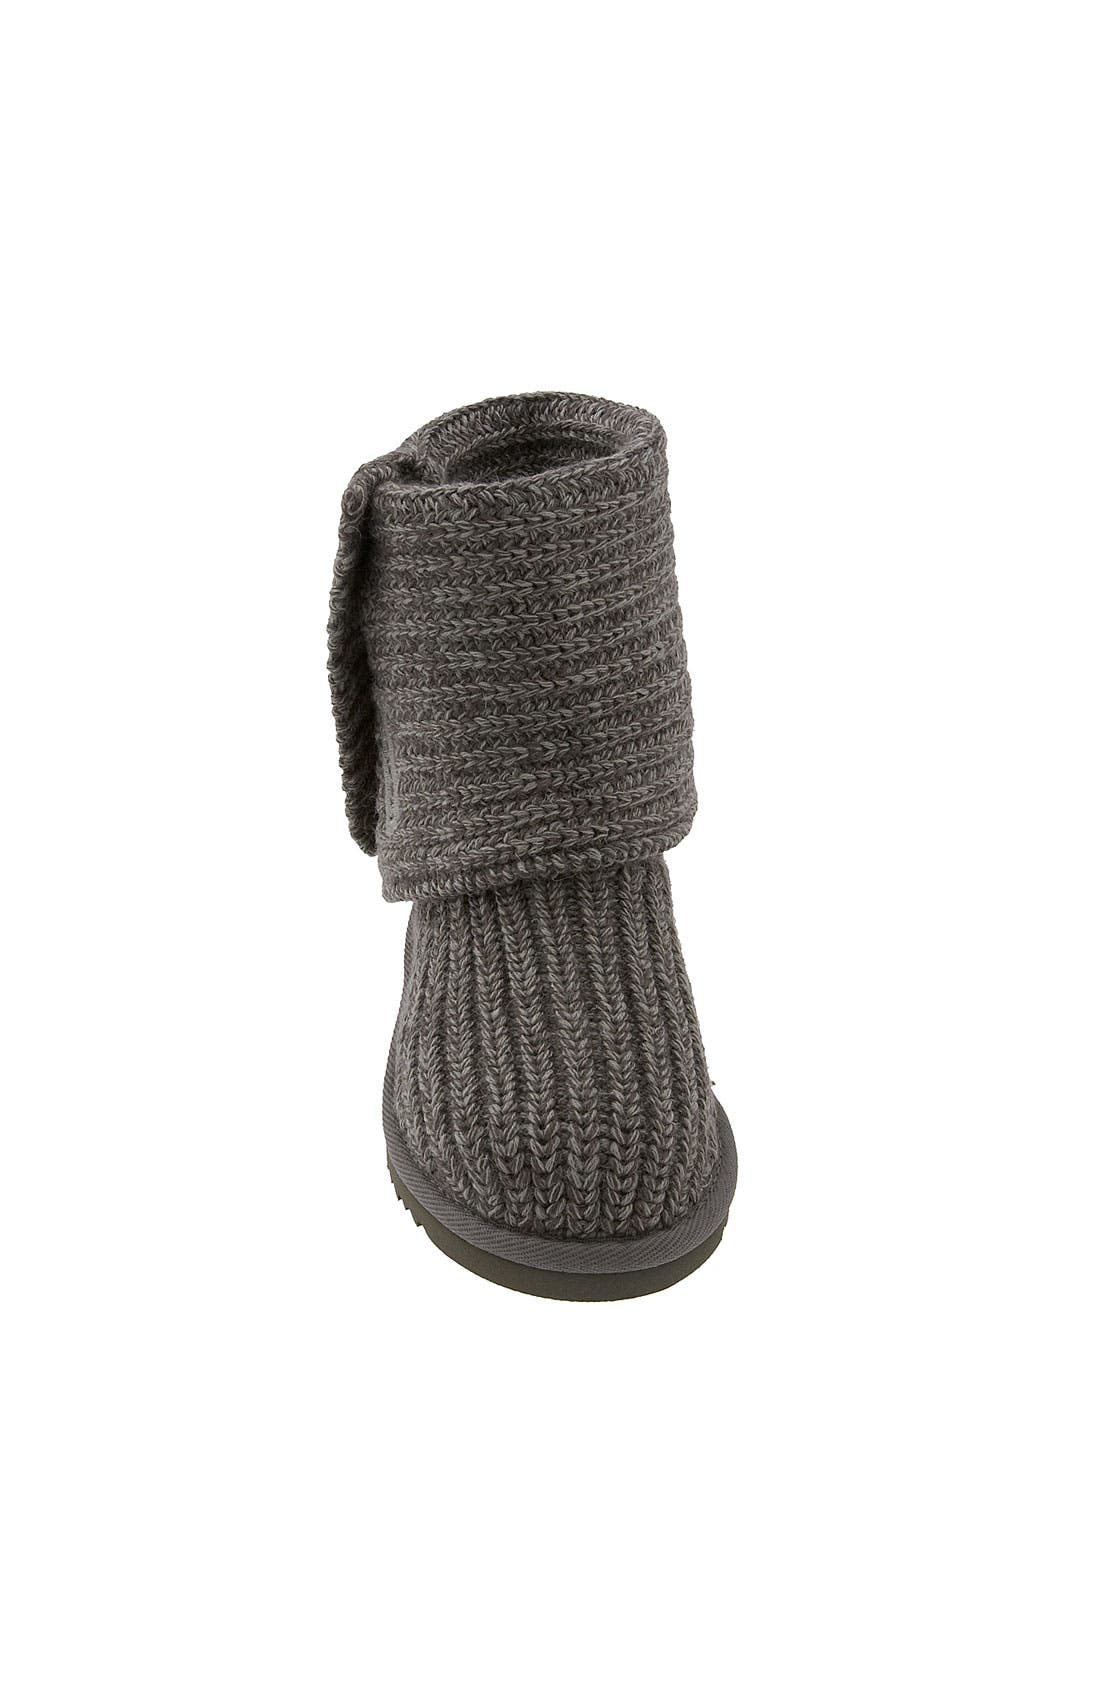 Alternate Image 4  - UGG® 'Cardy' Crochet Boot (Toddler, Little Kid & Big Kid)